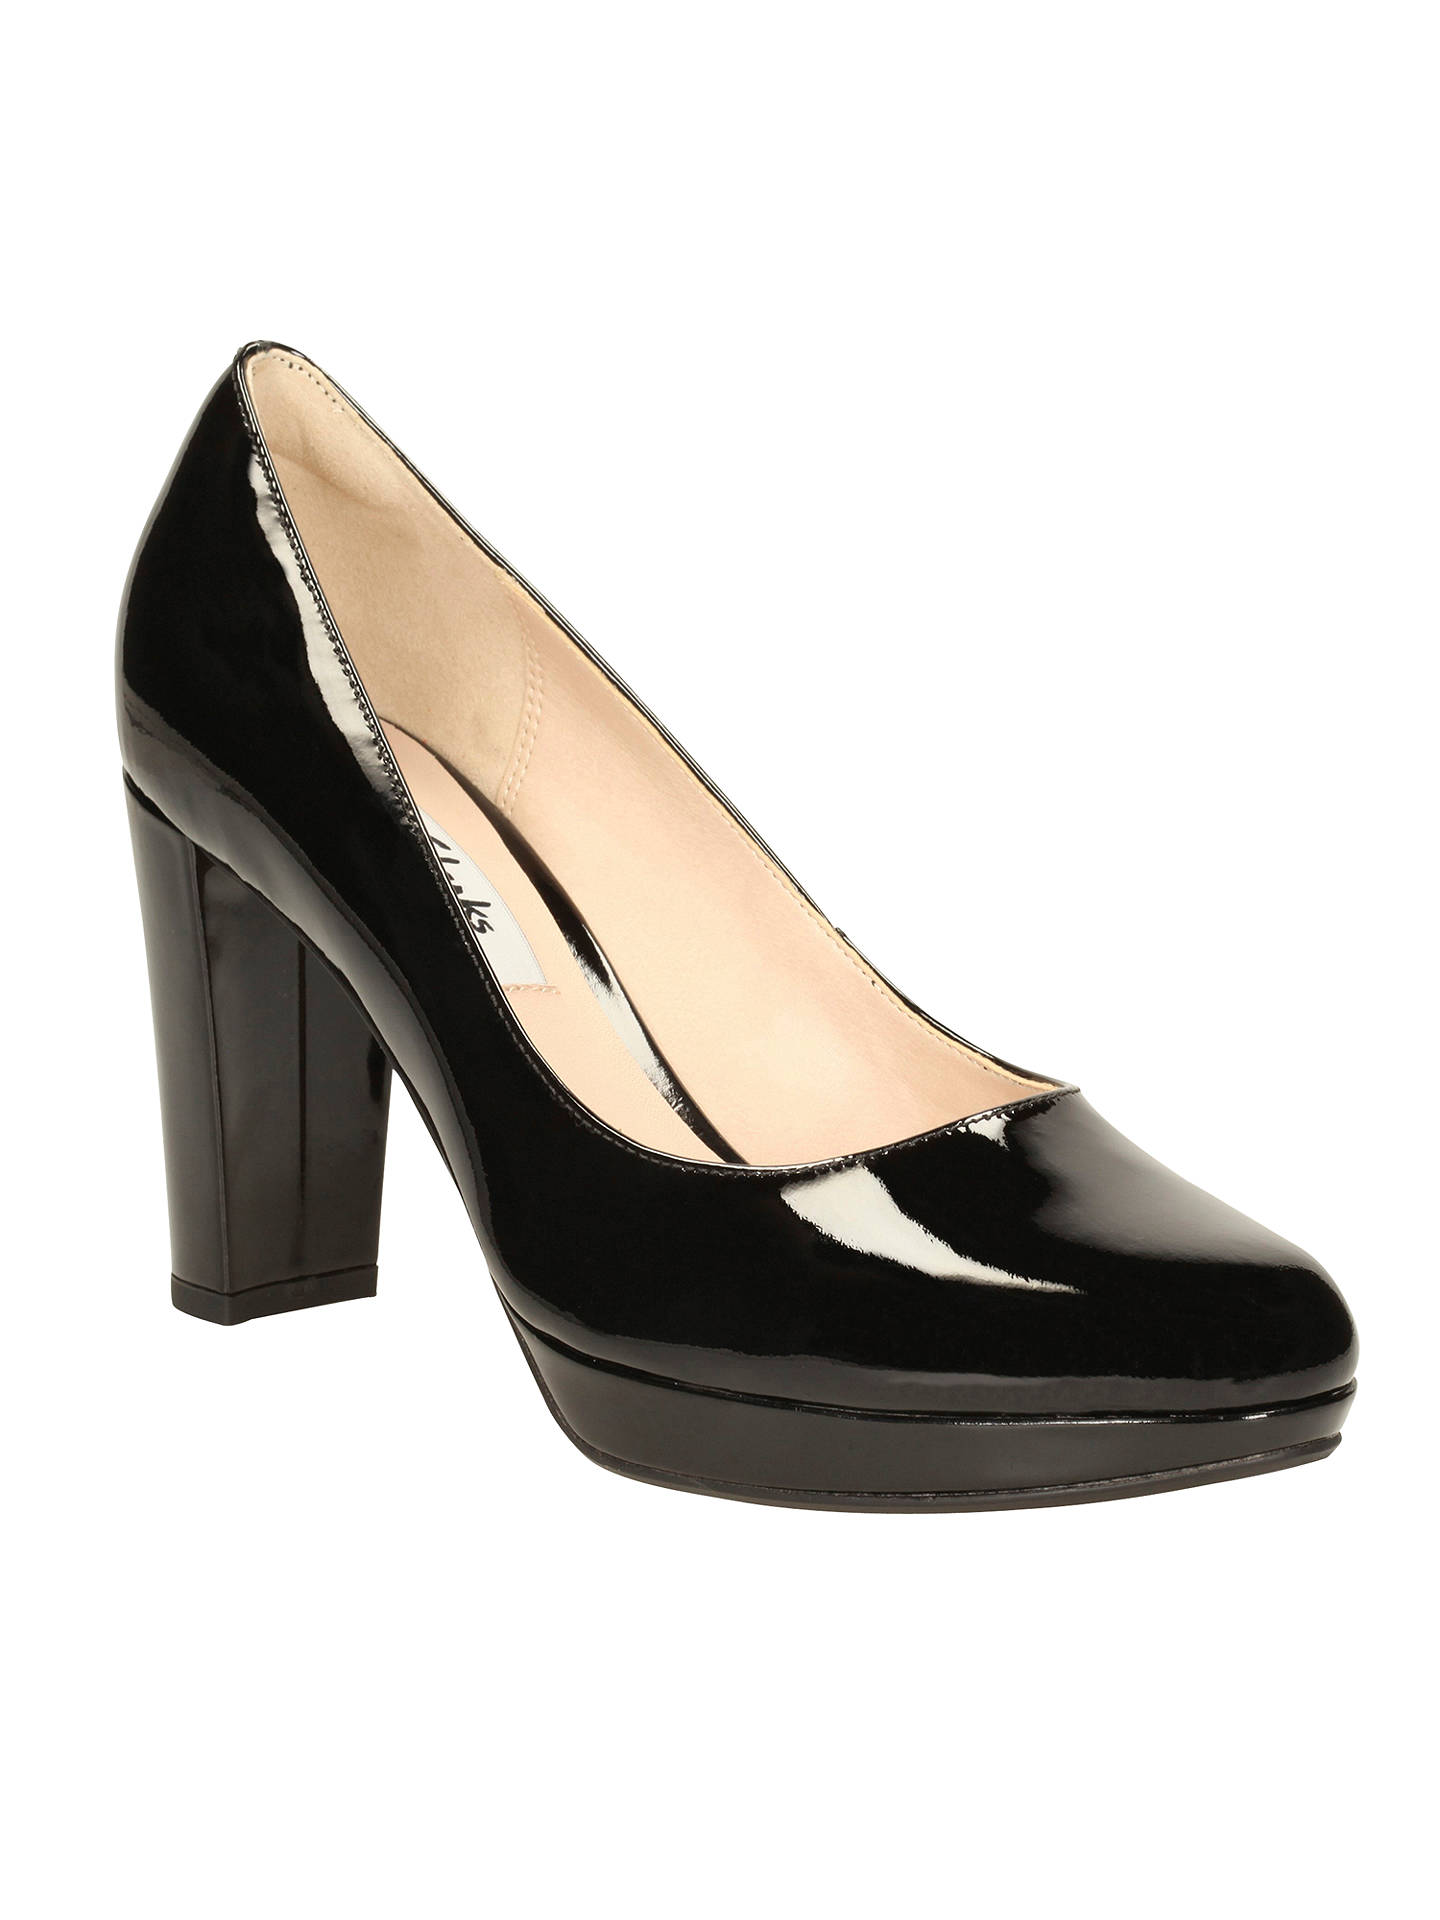 BuyClarks Kendra Sienna High Heel Court Shoes 704cba8a55dd